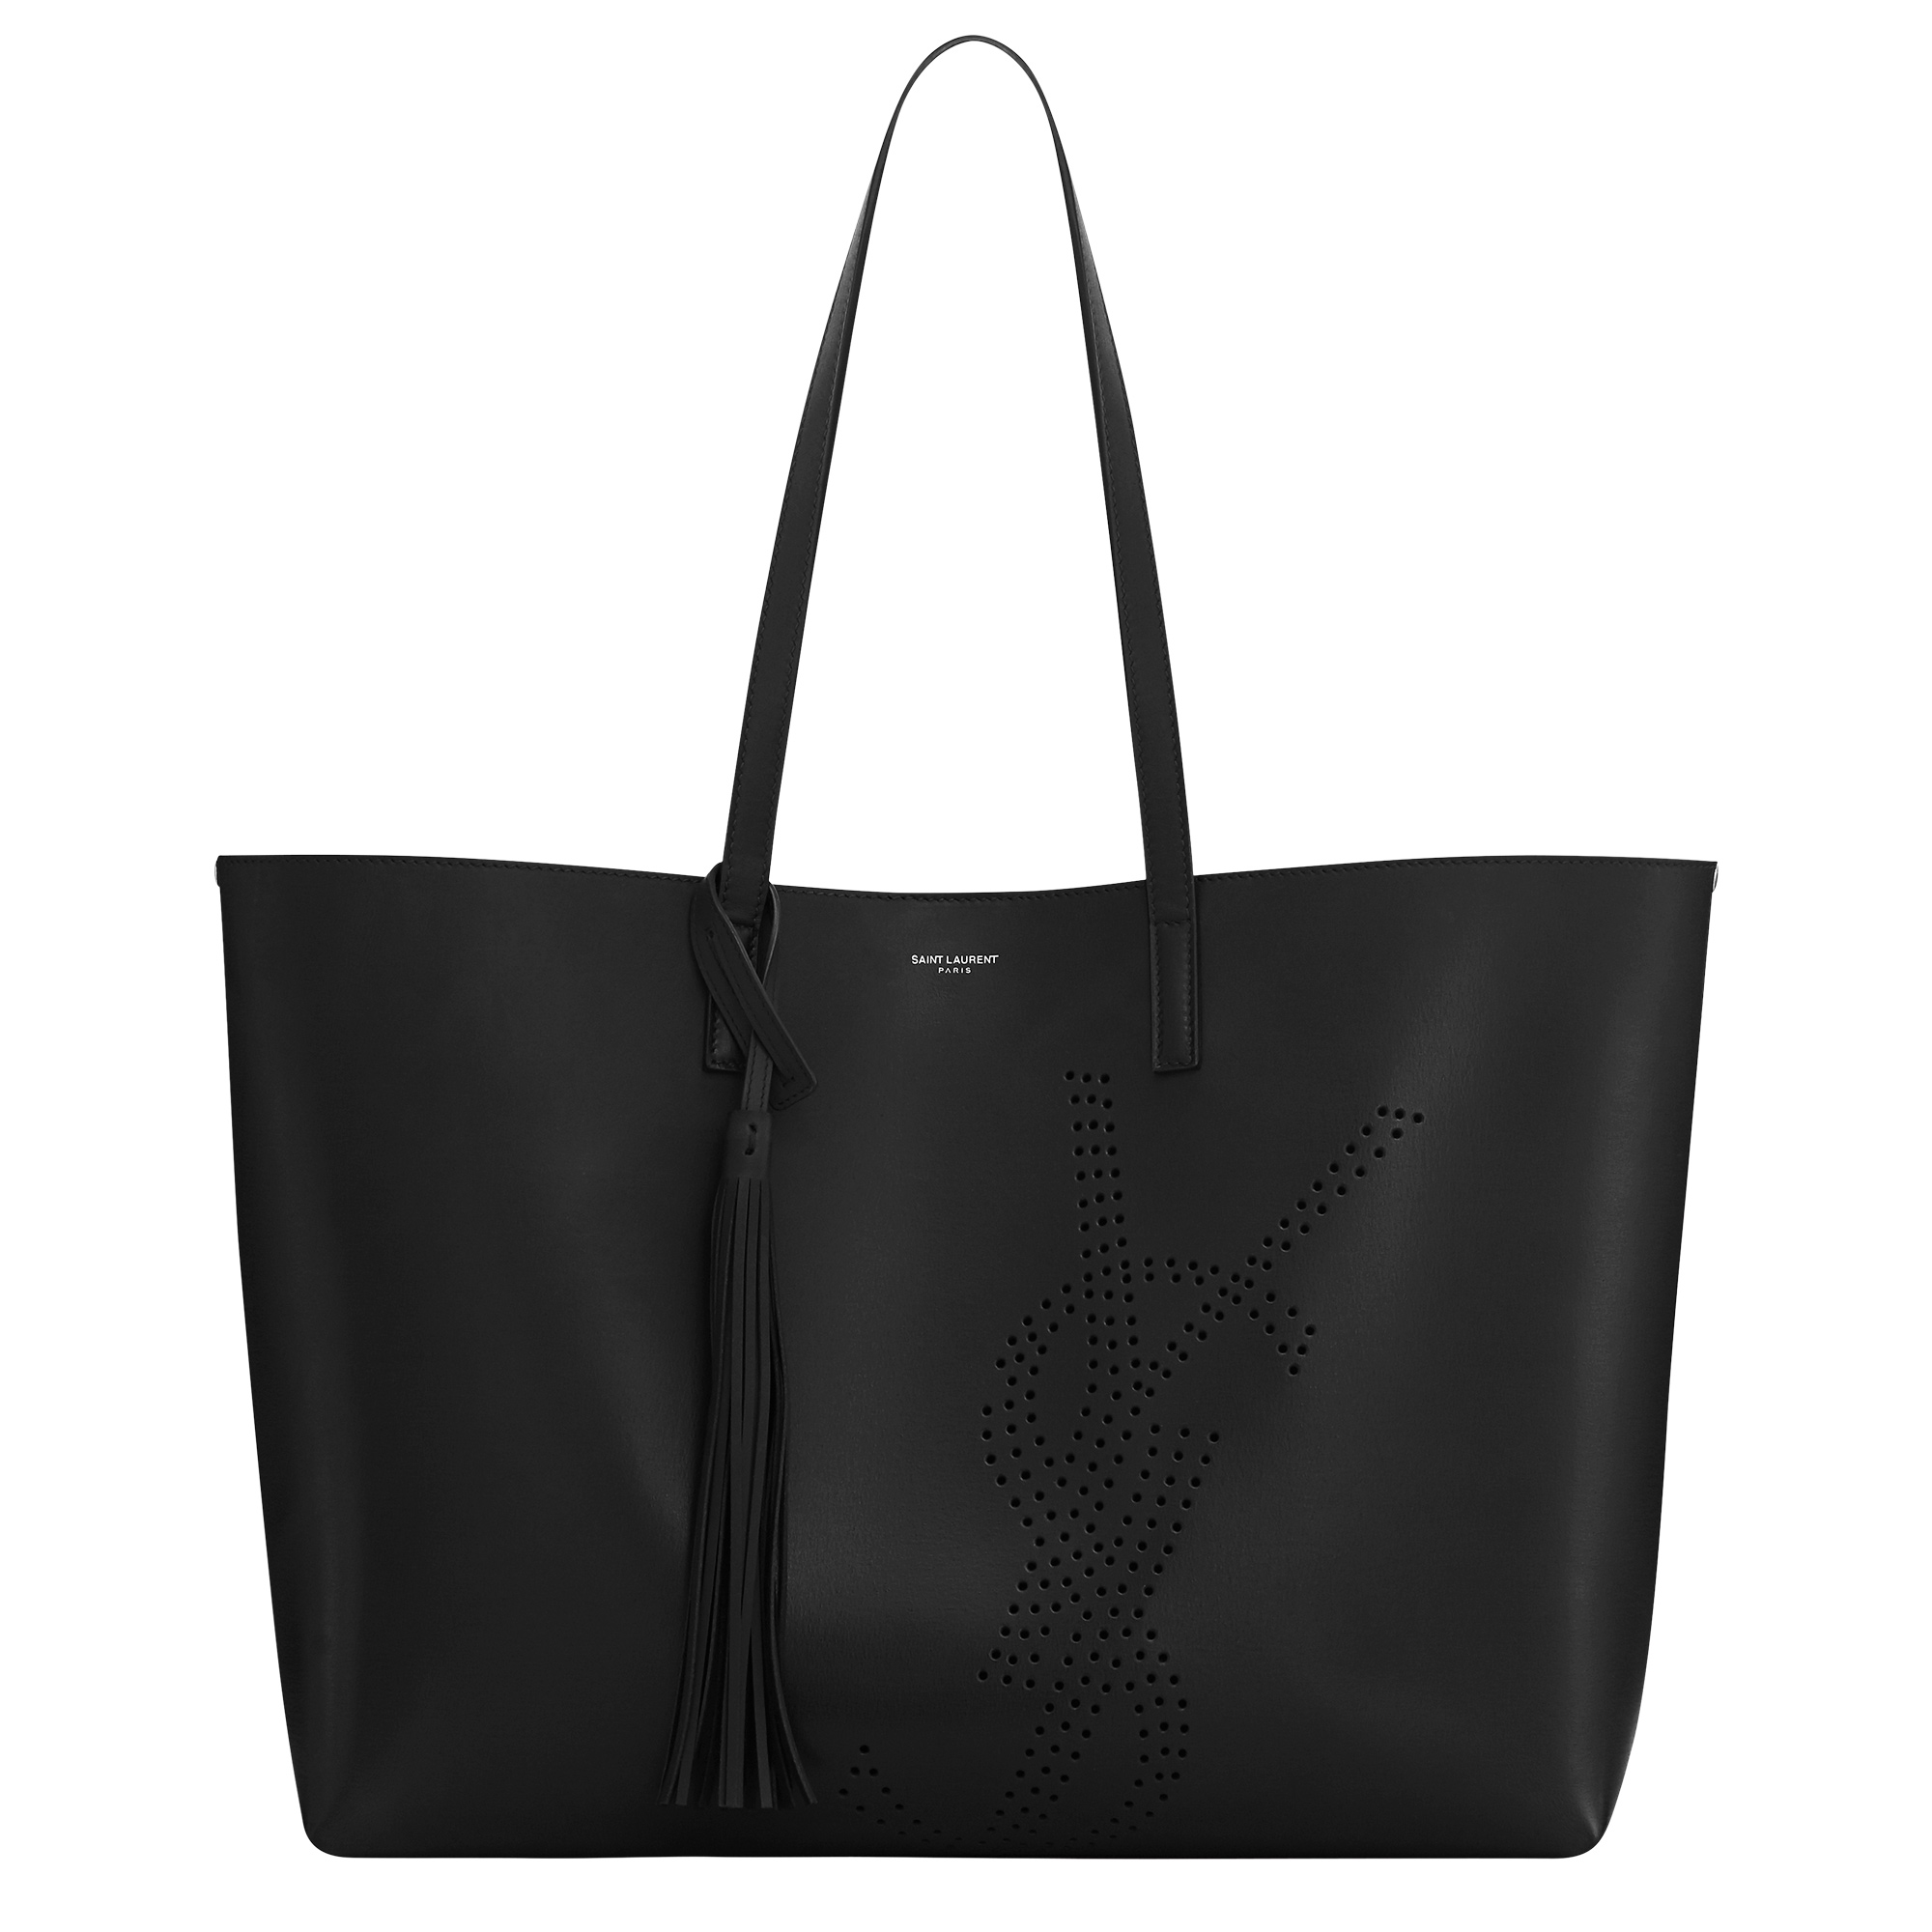 Must-have tote